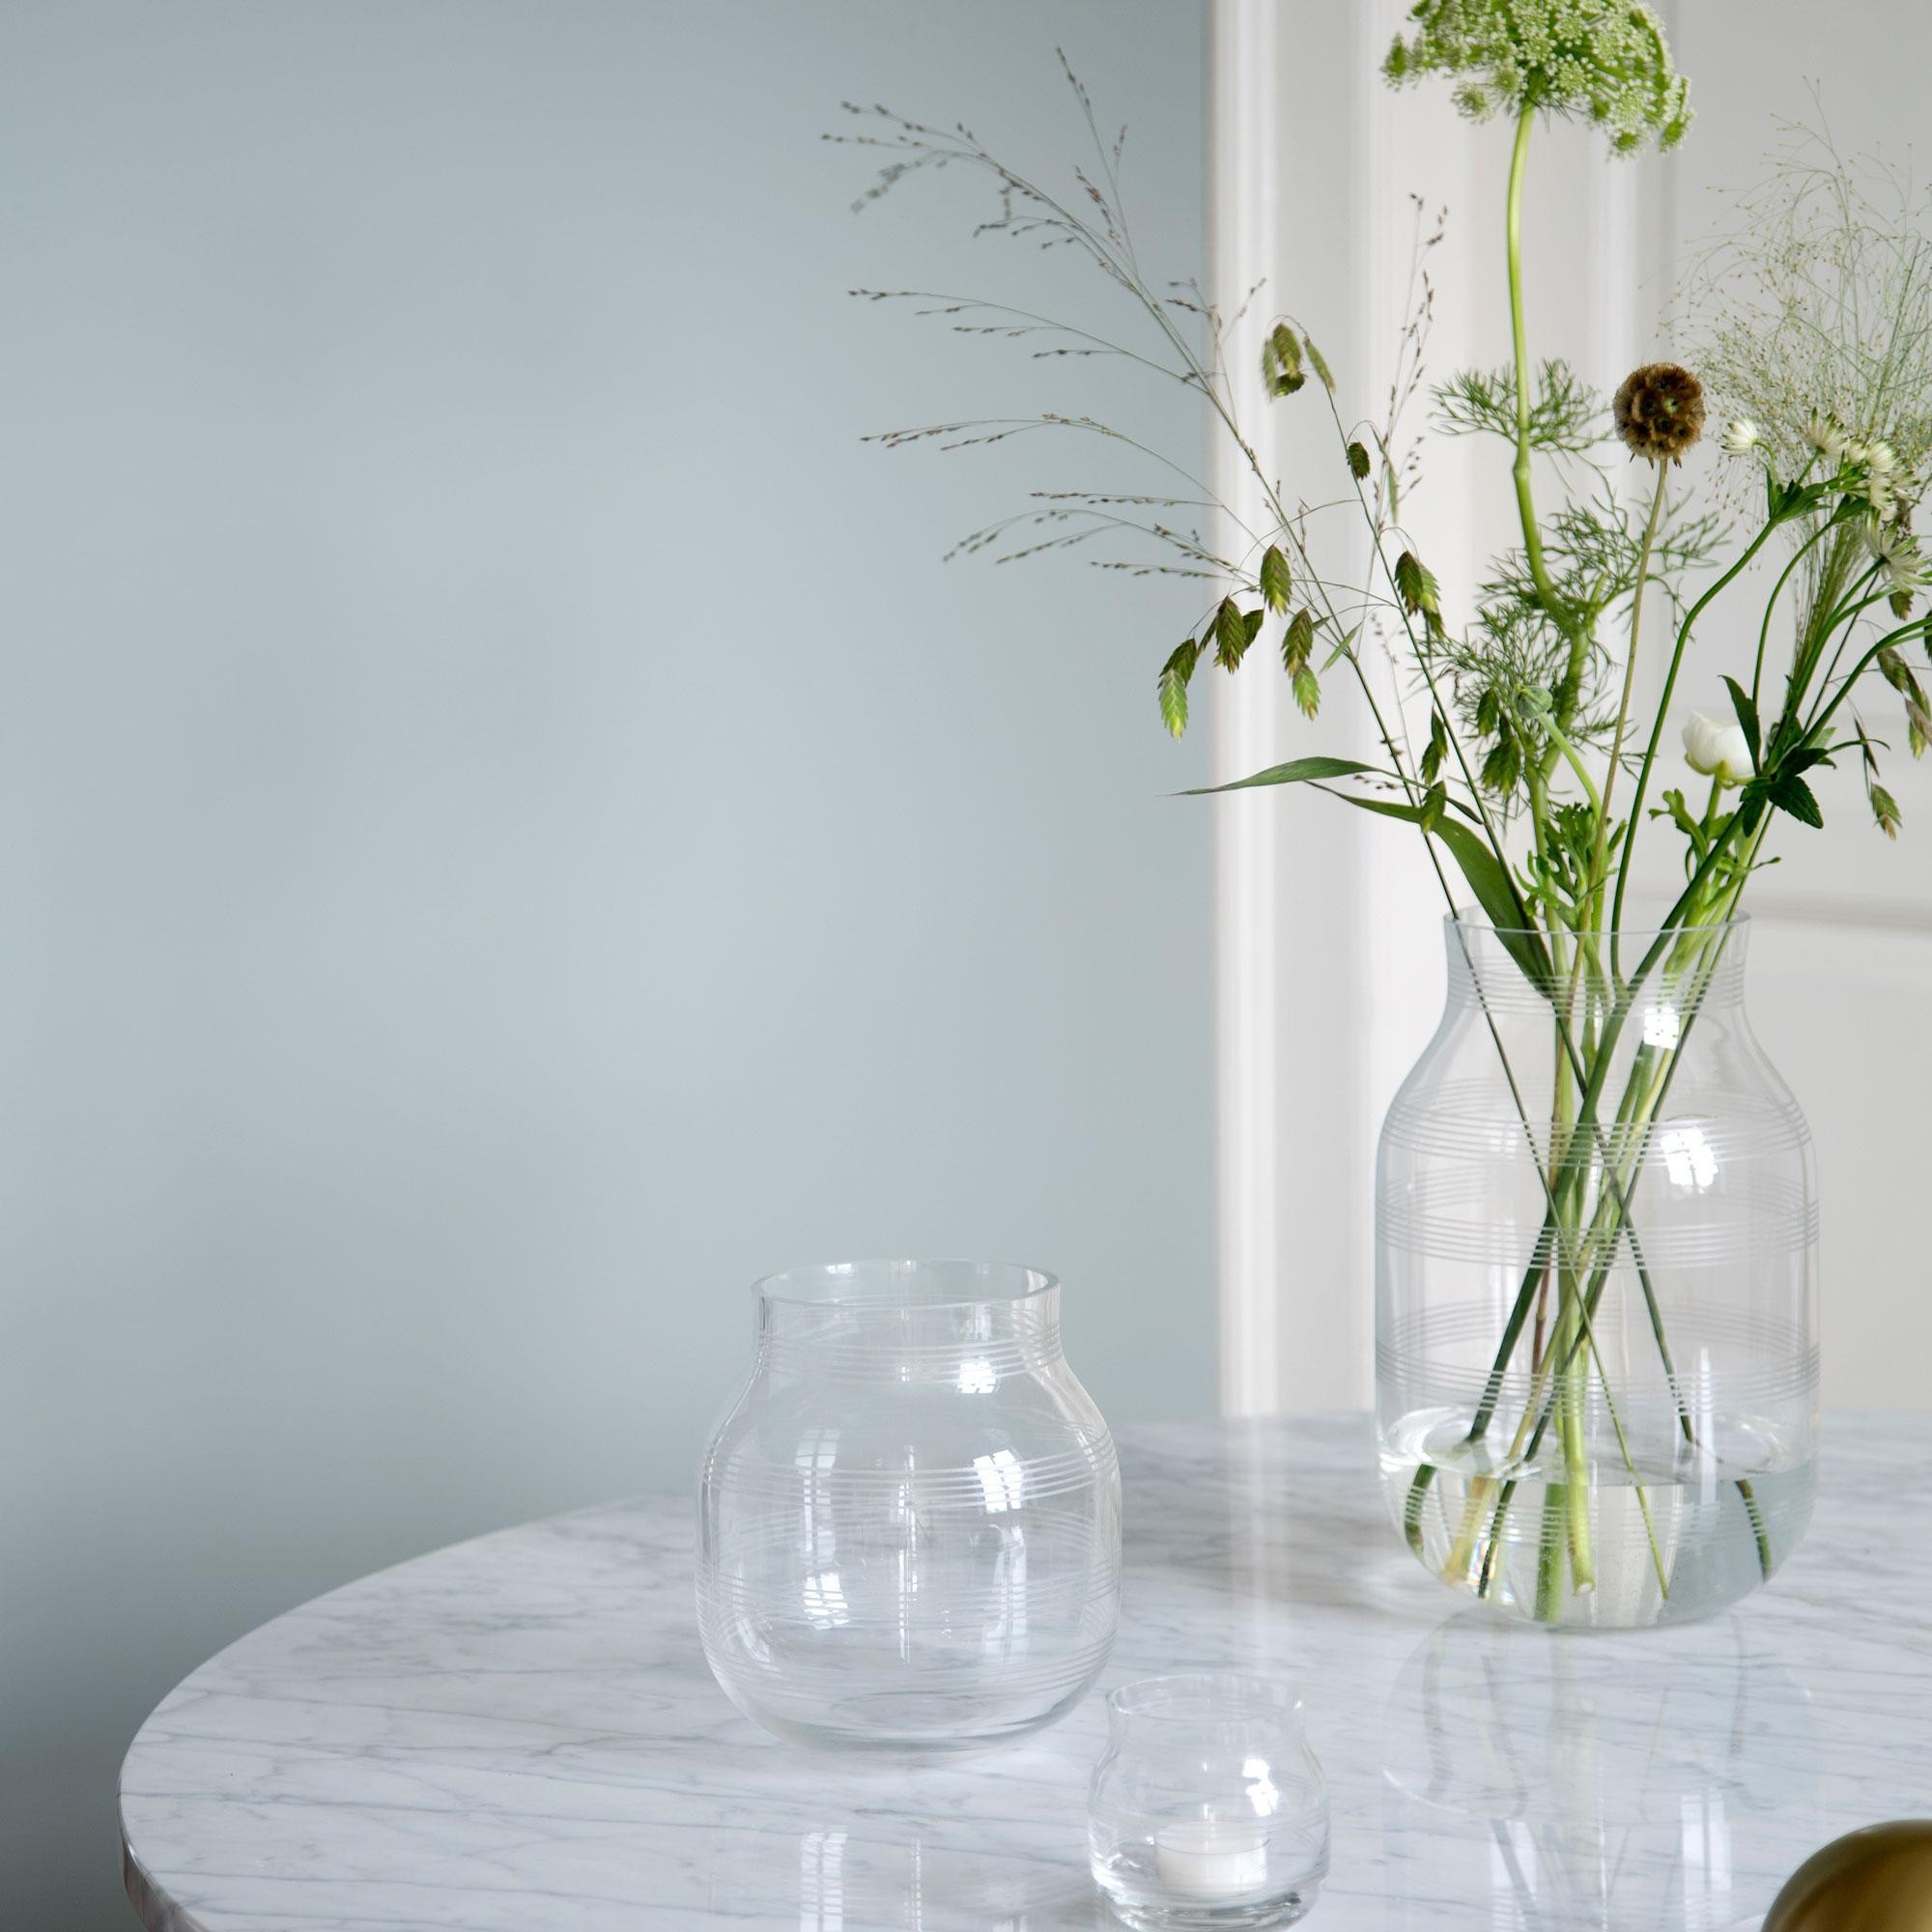 french vases for sale of ka¤hler omaggio glass vase h 17cm ambientedirect in all prices including vat plus shipping cost